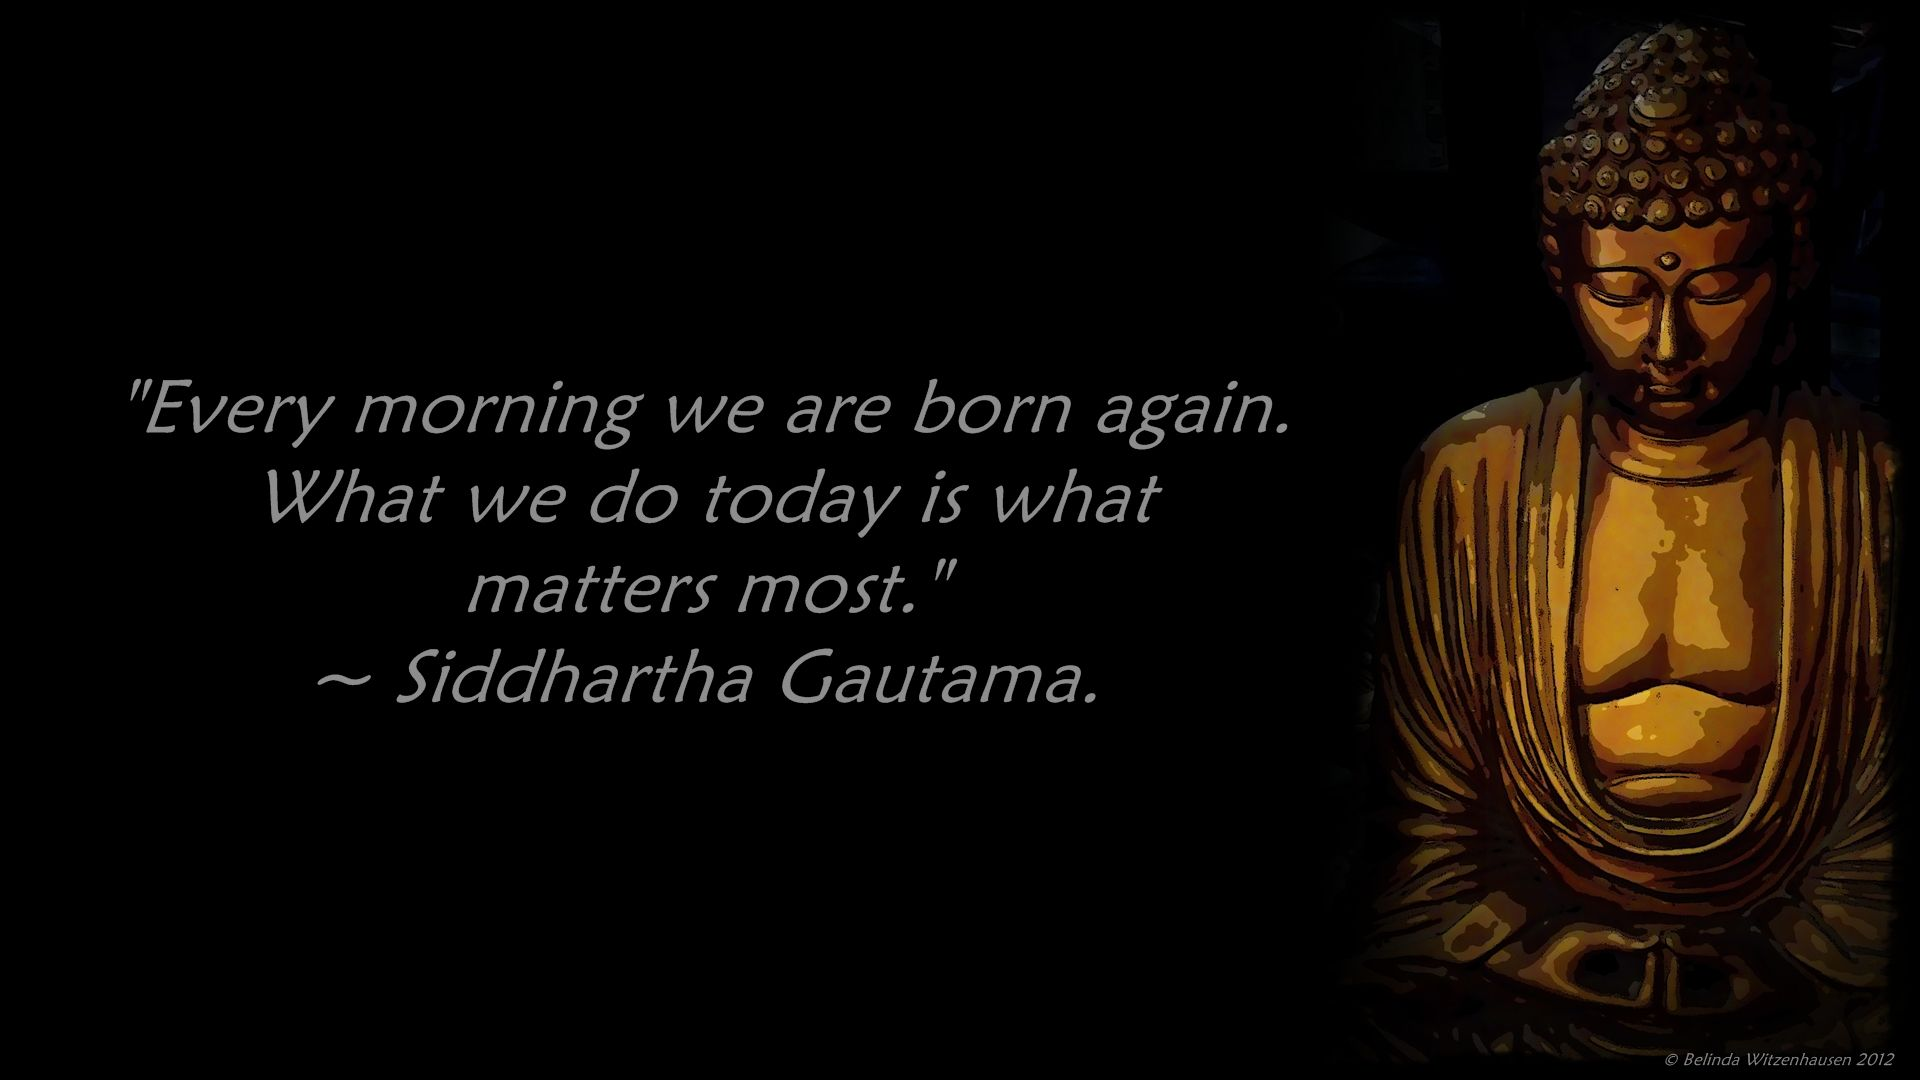 Gautama Buddha Quotes Buddha Forgiveness Quote  Google Search  Wisdom  Pinterest